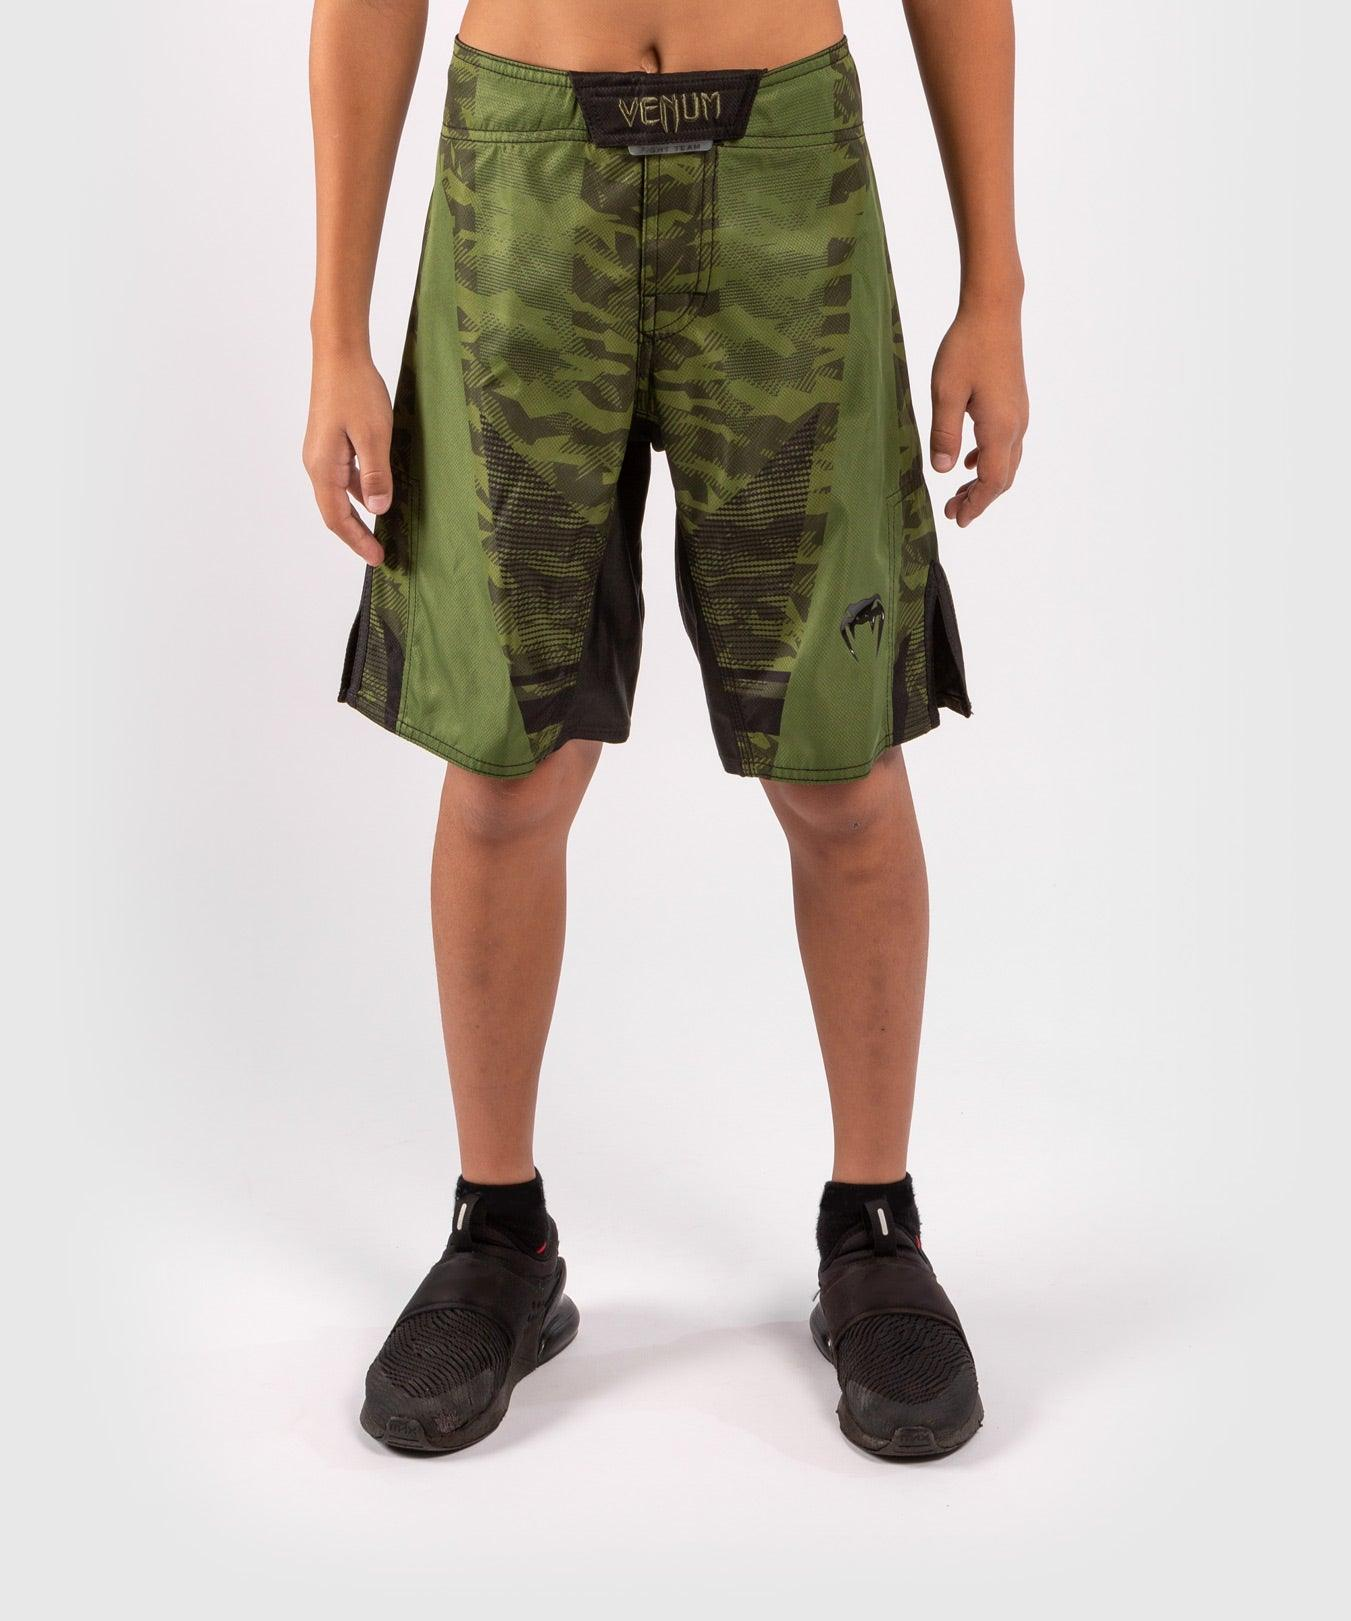 Venum Trooper Kids Fightshorts - Forest camo/Black picture 1